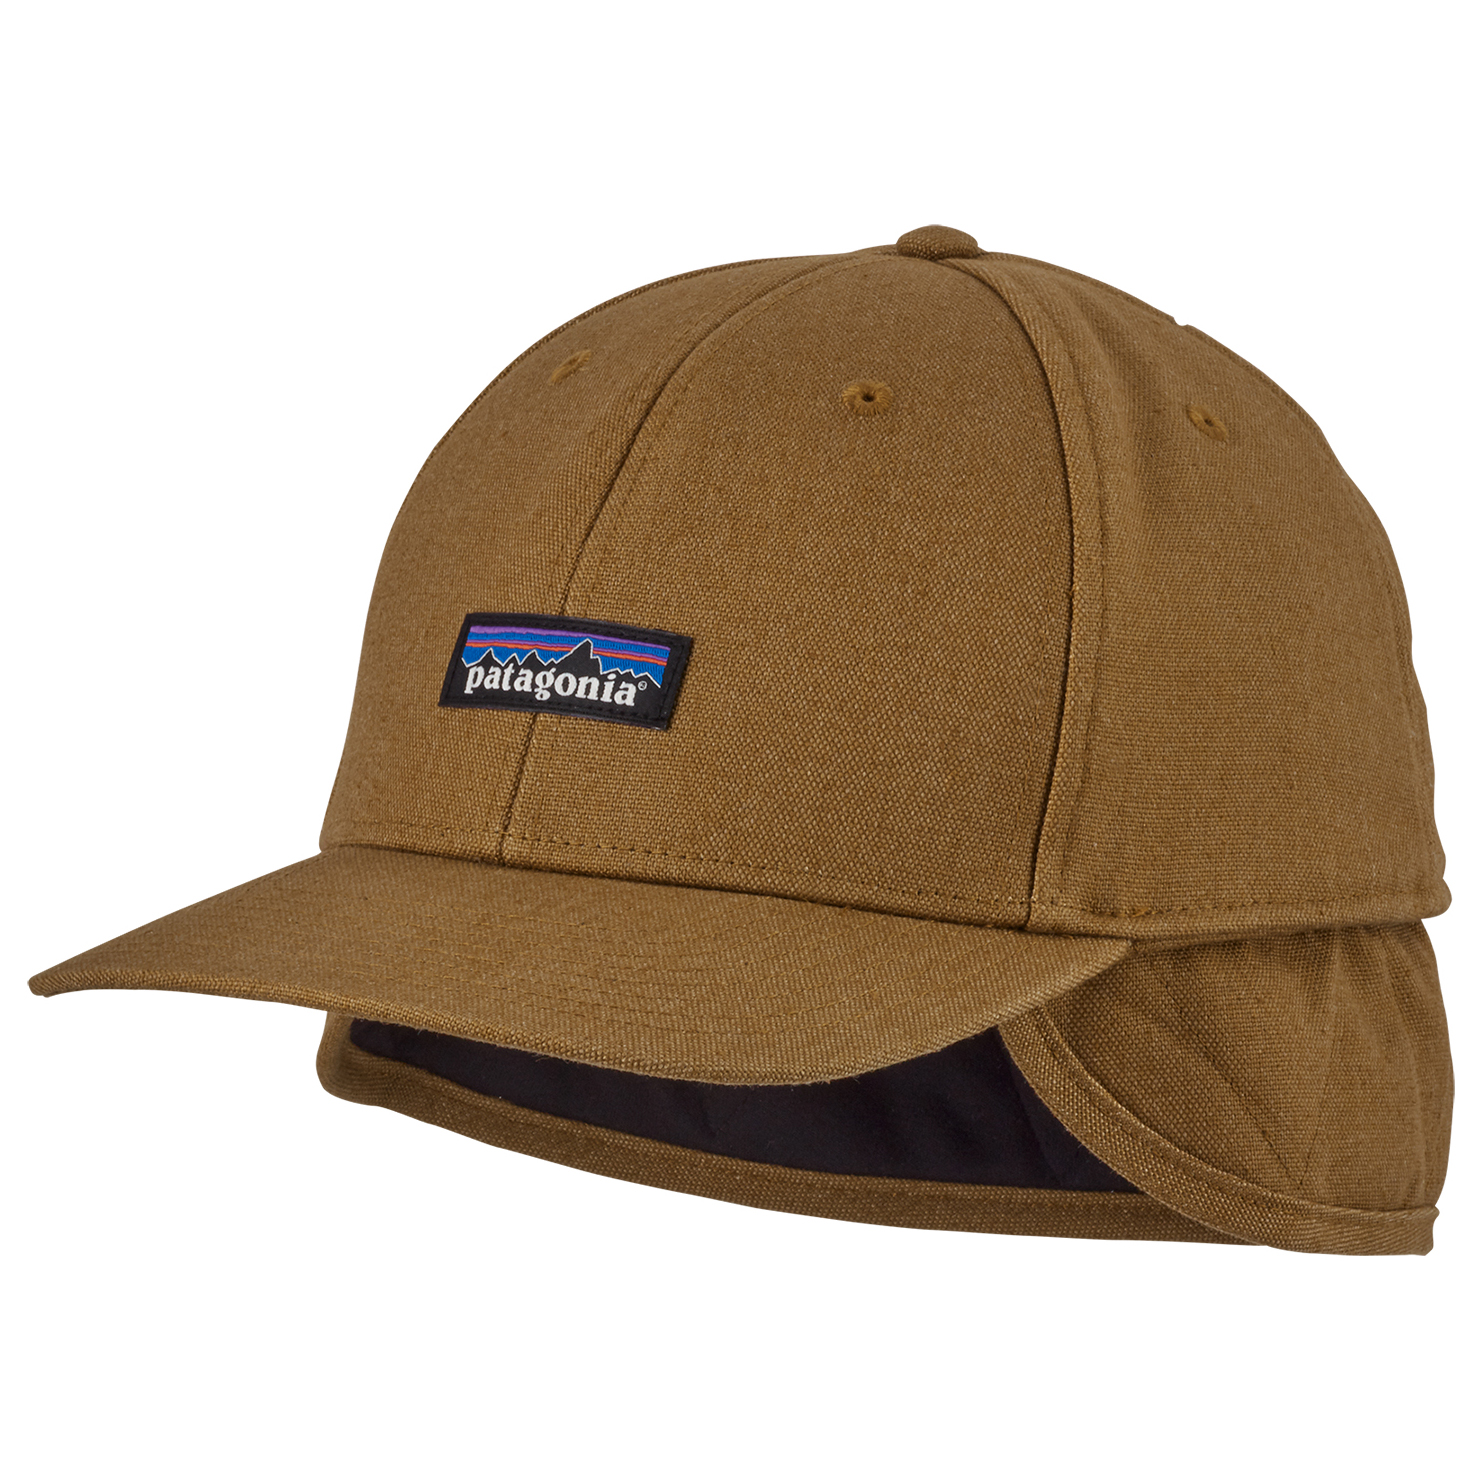 Tin Shed Outdoor Hats Hats: Patagonia Insulated Tin Shed Cap Herren Online Kaufen